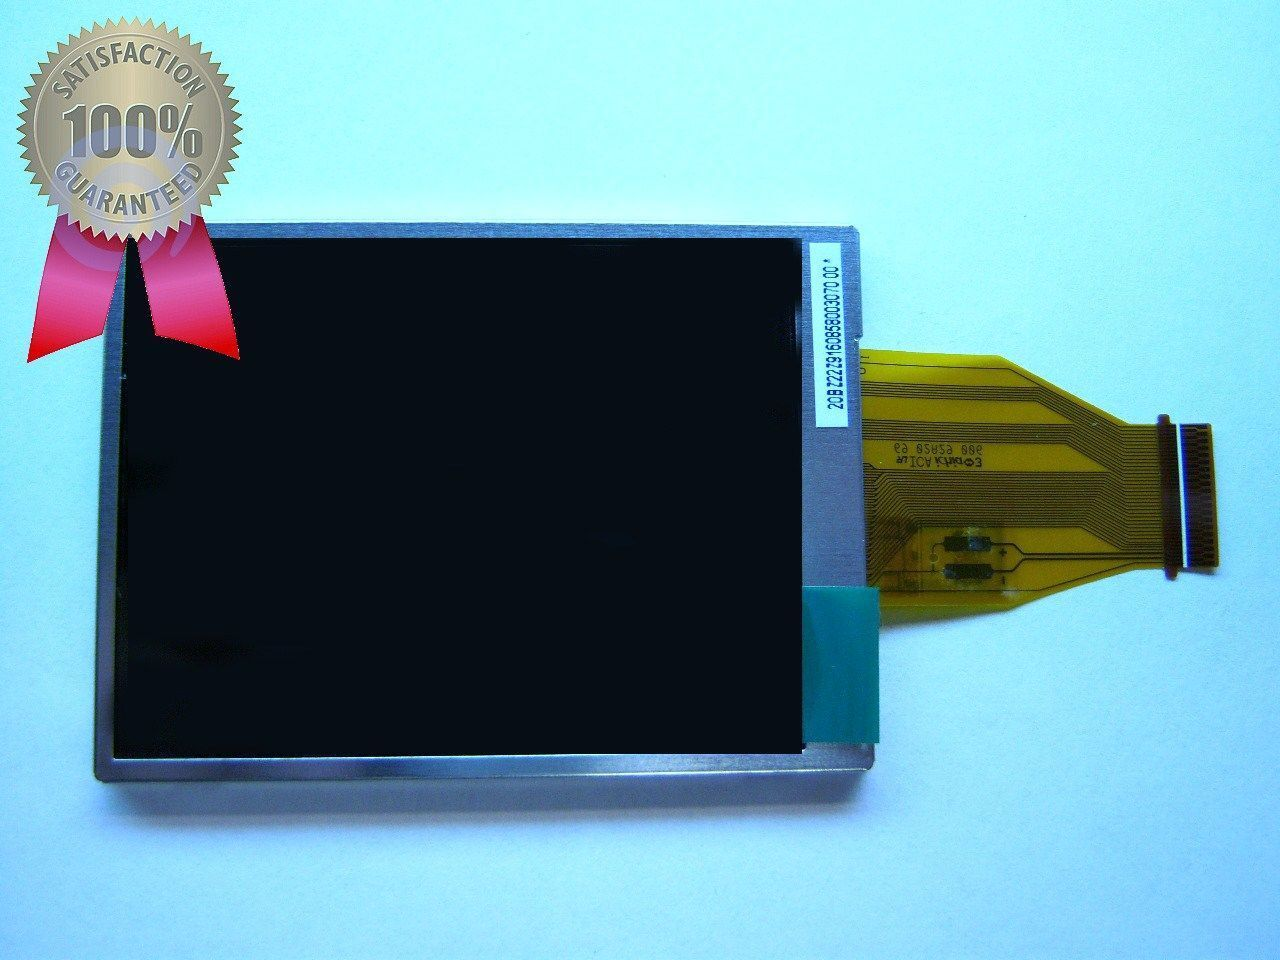 Sanyo Vpc-s120 Replacement Lcd Display Screen Monitor